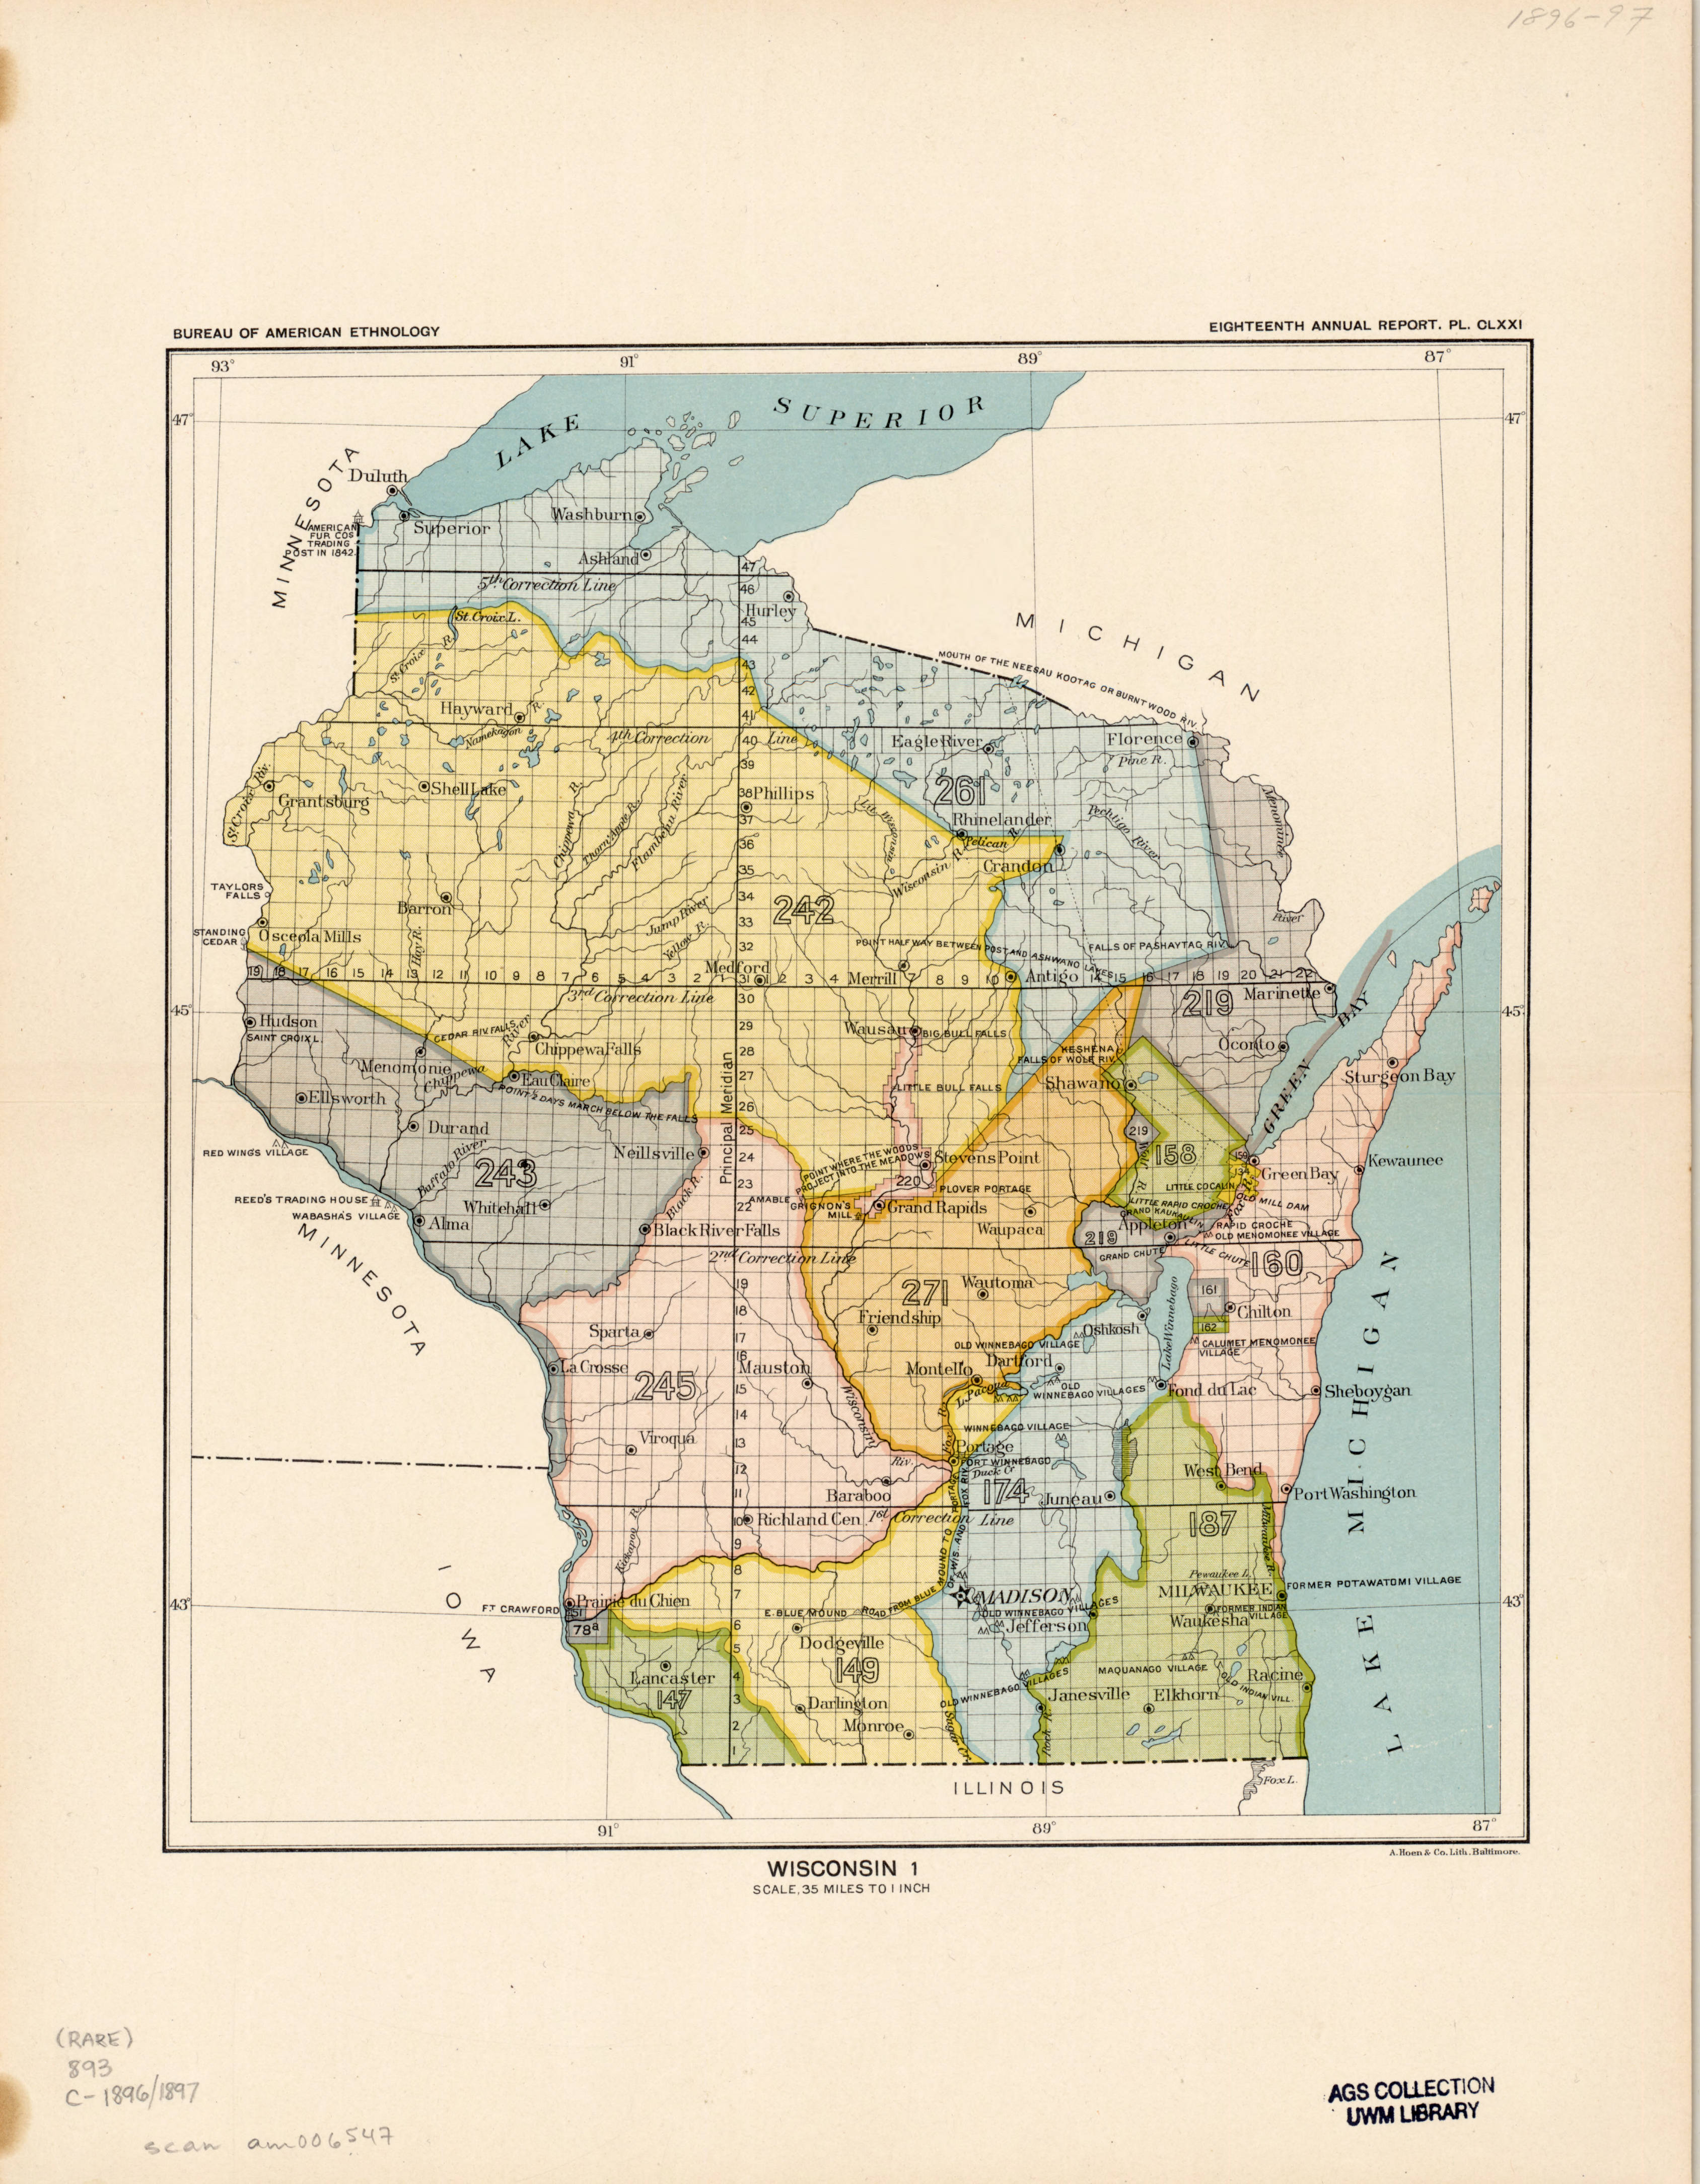 <table class=&quot;lightbox&quot;><tr><td colspan=2 class=&quot;lightbox-title&quot;>Map of Land Cessions</td></tr><tr><td colspan=2 class=&quot;lightbox-caption&quot;>Before Milwaukee became a city, the western shore of Lake Michigan and what we know now as Southeast Wisconsin was Indian Country.  In 1829, the Menominee Indians ceded the land in the pink area to the U.S.  The Chippewa, Ottawa, and Potawatomi ceded the land in green area  to the U.S. in 1832.  Together, these land cessions reshaped the geography of the southwestern shore of Lake Michigan, and made the area we now call the Milwaukee metropolitan area United States land.</td></tr><tr><td colspan=2 class=&quot;lightbox-spacer&quot;></td></tr><tr class=&quot;lightbox-detail&quot;><td class=&quot;cell-title&quot;>Source: </td><td class=&quot;cell-value&quot;>From the Eighteenth Annual Report of the Bureau of American Ethnology to the Secretary of the Smithsonian Institution, 1896-1897. Accessed via the Library of Congress. <br /><a href=&quot;http://memory.loc.gov/ammem/amlaw/lwss-ilc.html&quot; target=&quot;_blank&quot;>Library of Congress</a></td></tr><tr class=&quot;filler-row&quot;><td colspan=2>&nbsp;</td></tr></table>